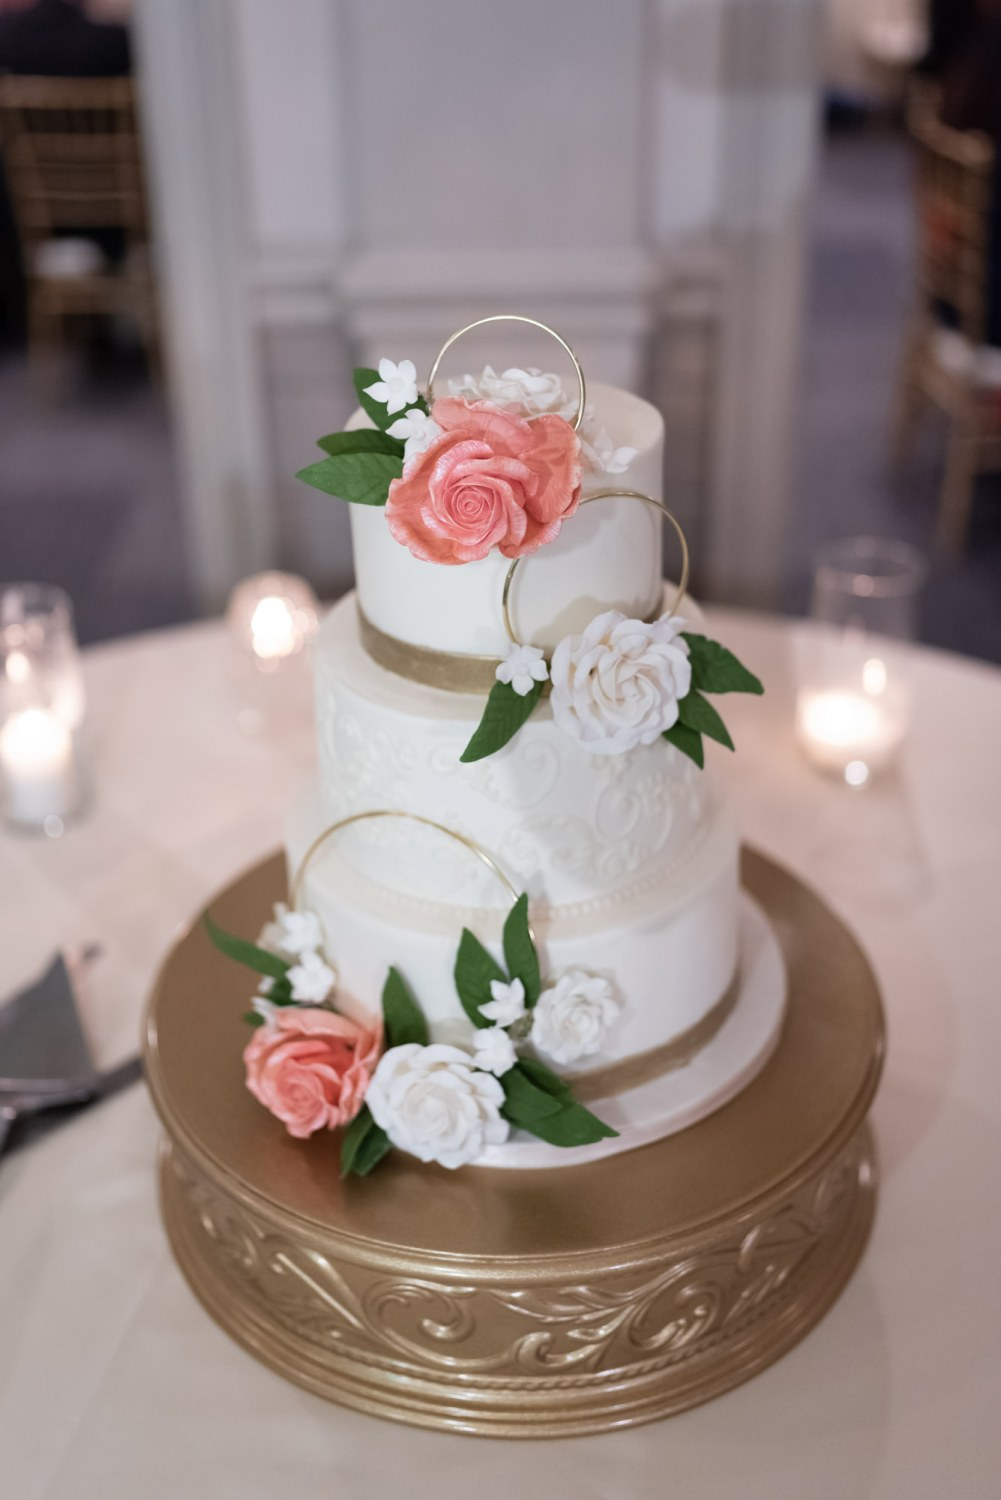 Cake picture - Litchfield Country Club